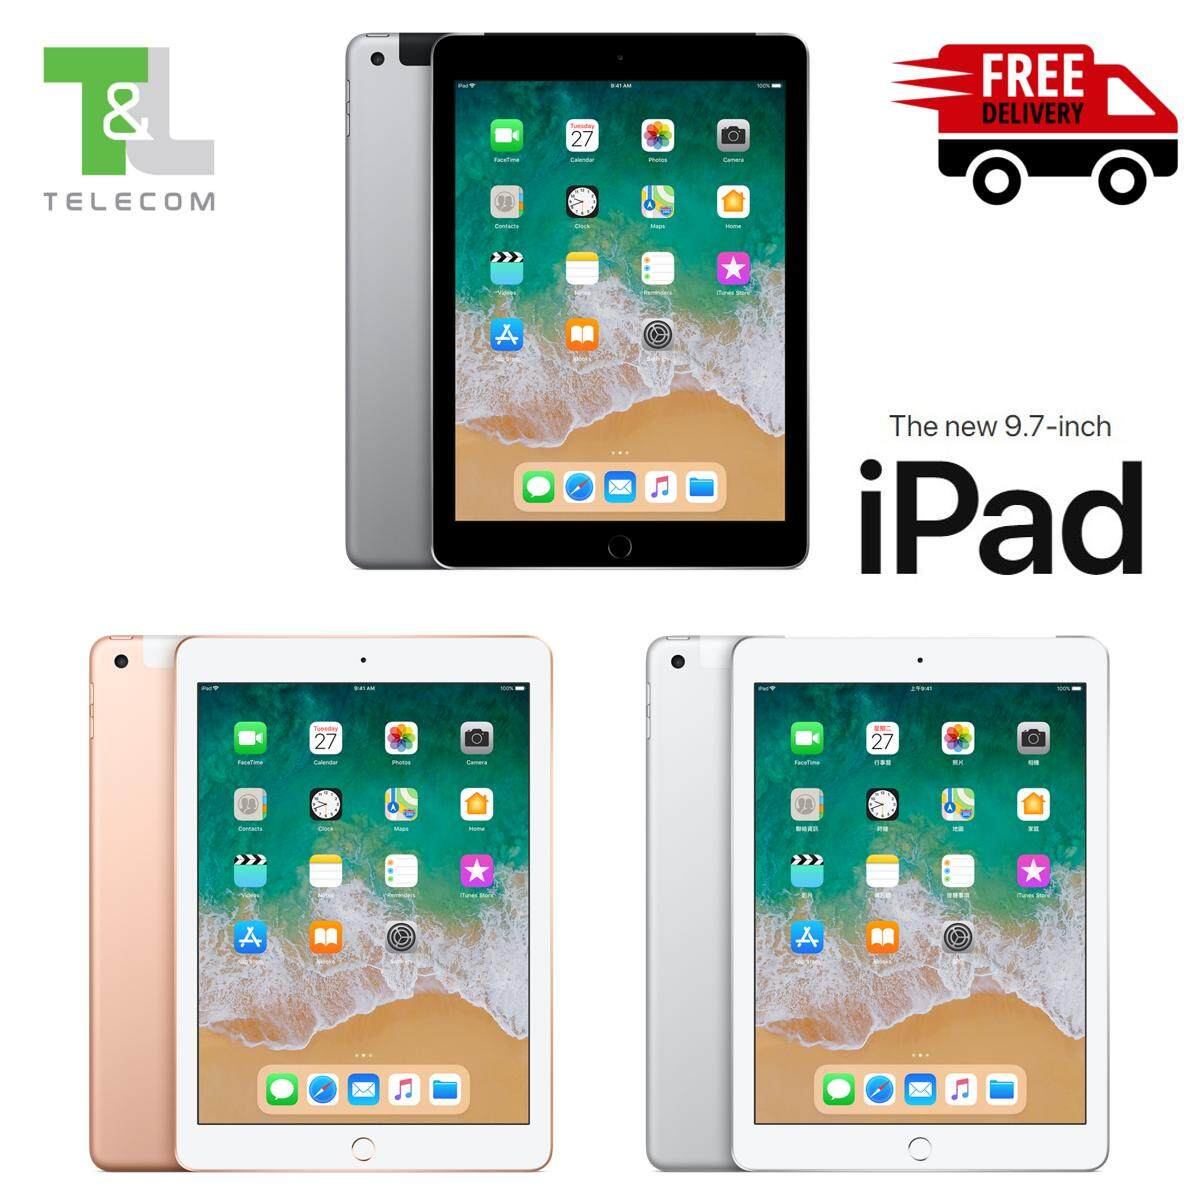 Features Apple Ipad 9 7 2018 32gb Wi Fi Cellular Lte Space Grey Pro 105 512gb New Silver Wifi Only 97